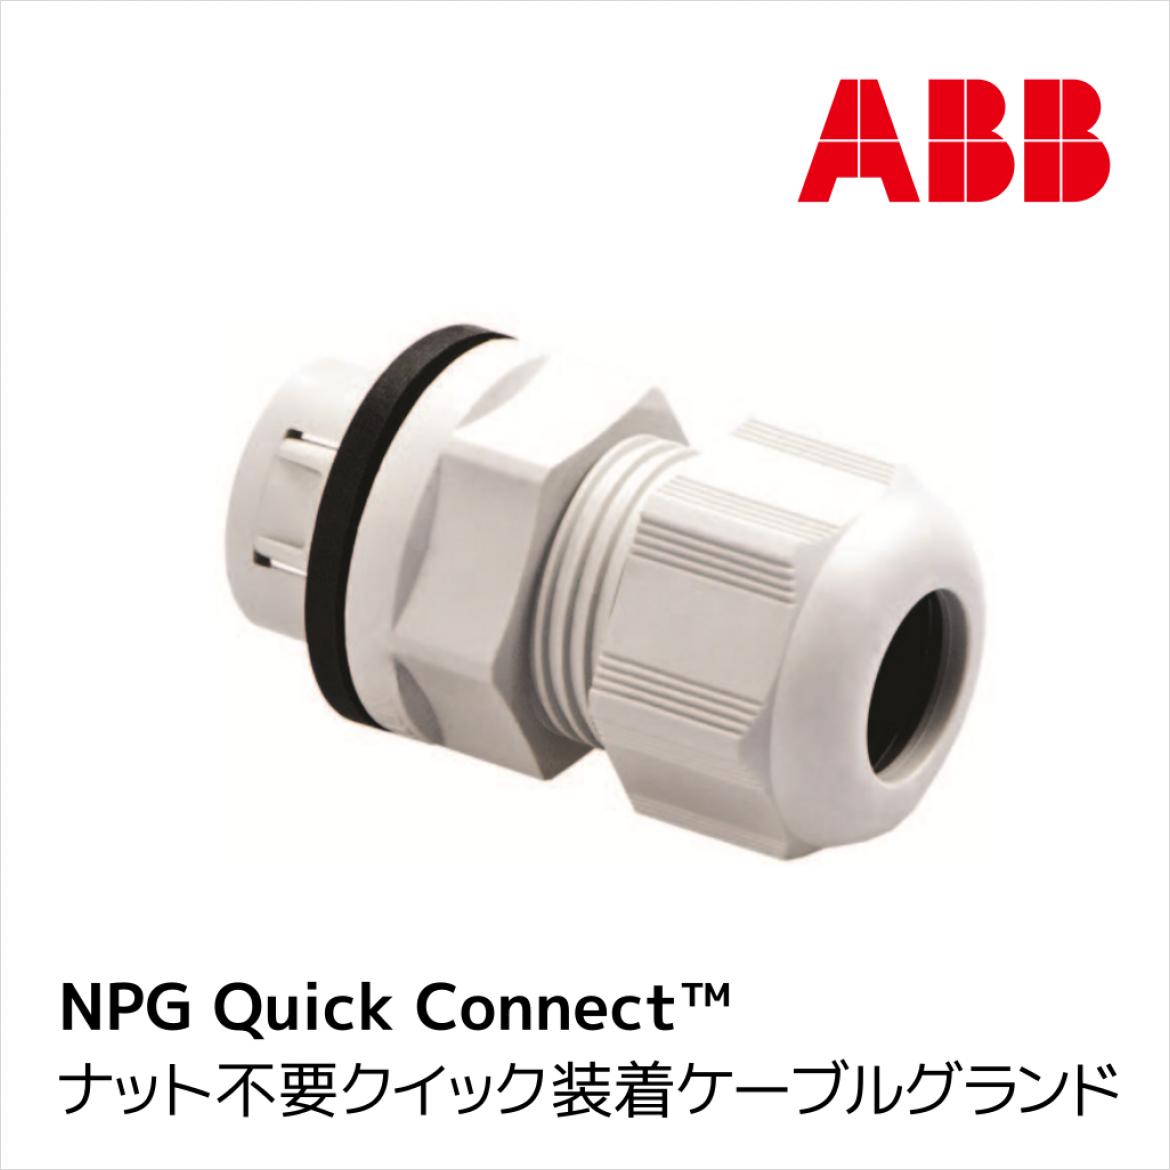 NPG Quick Connect